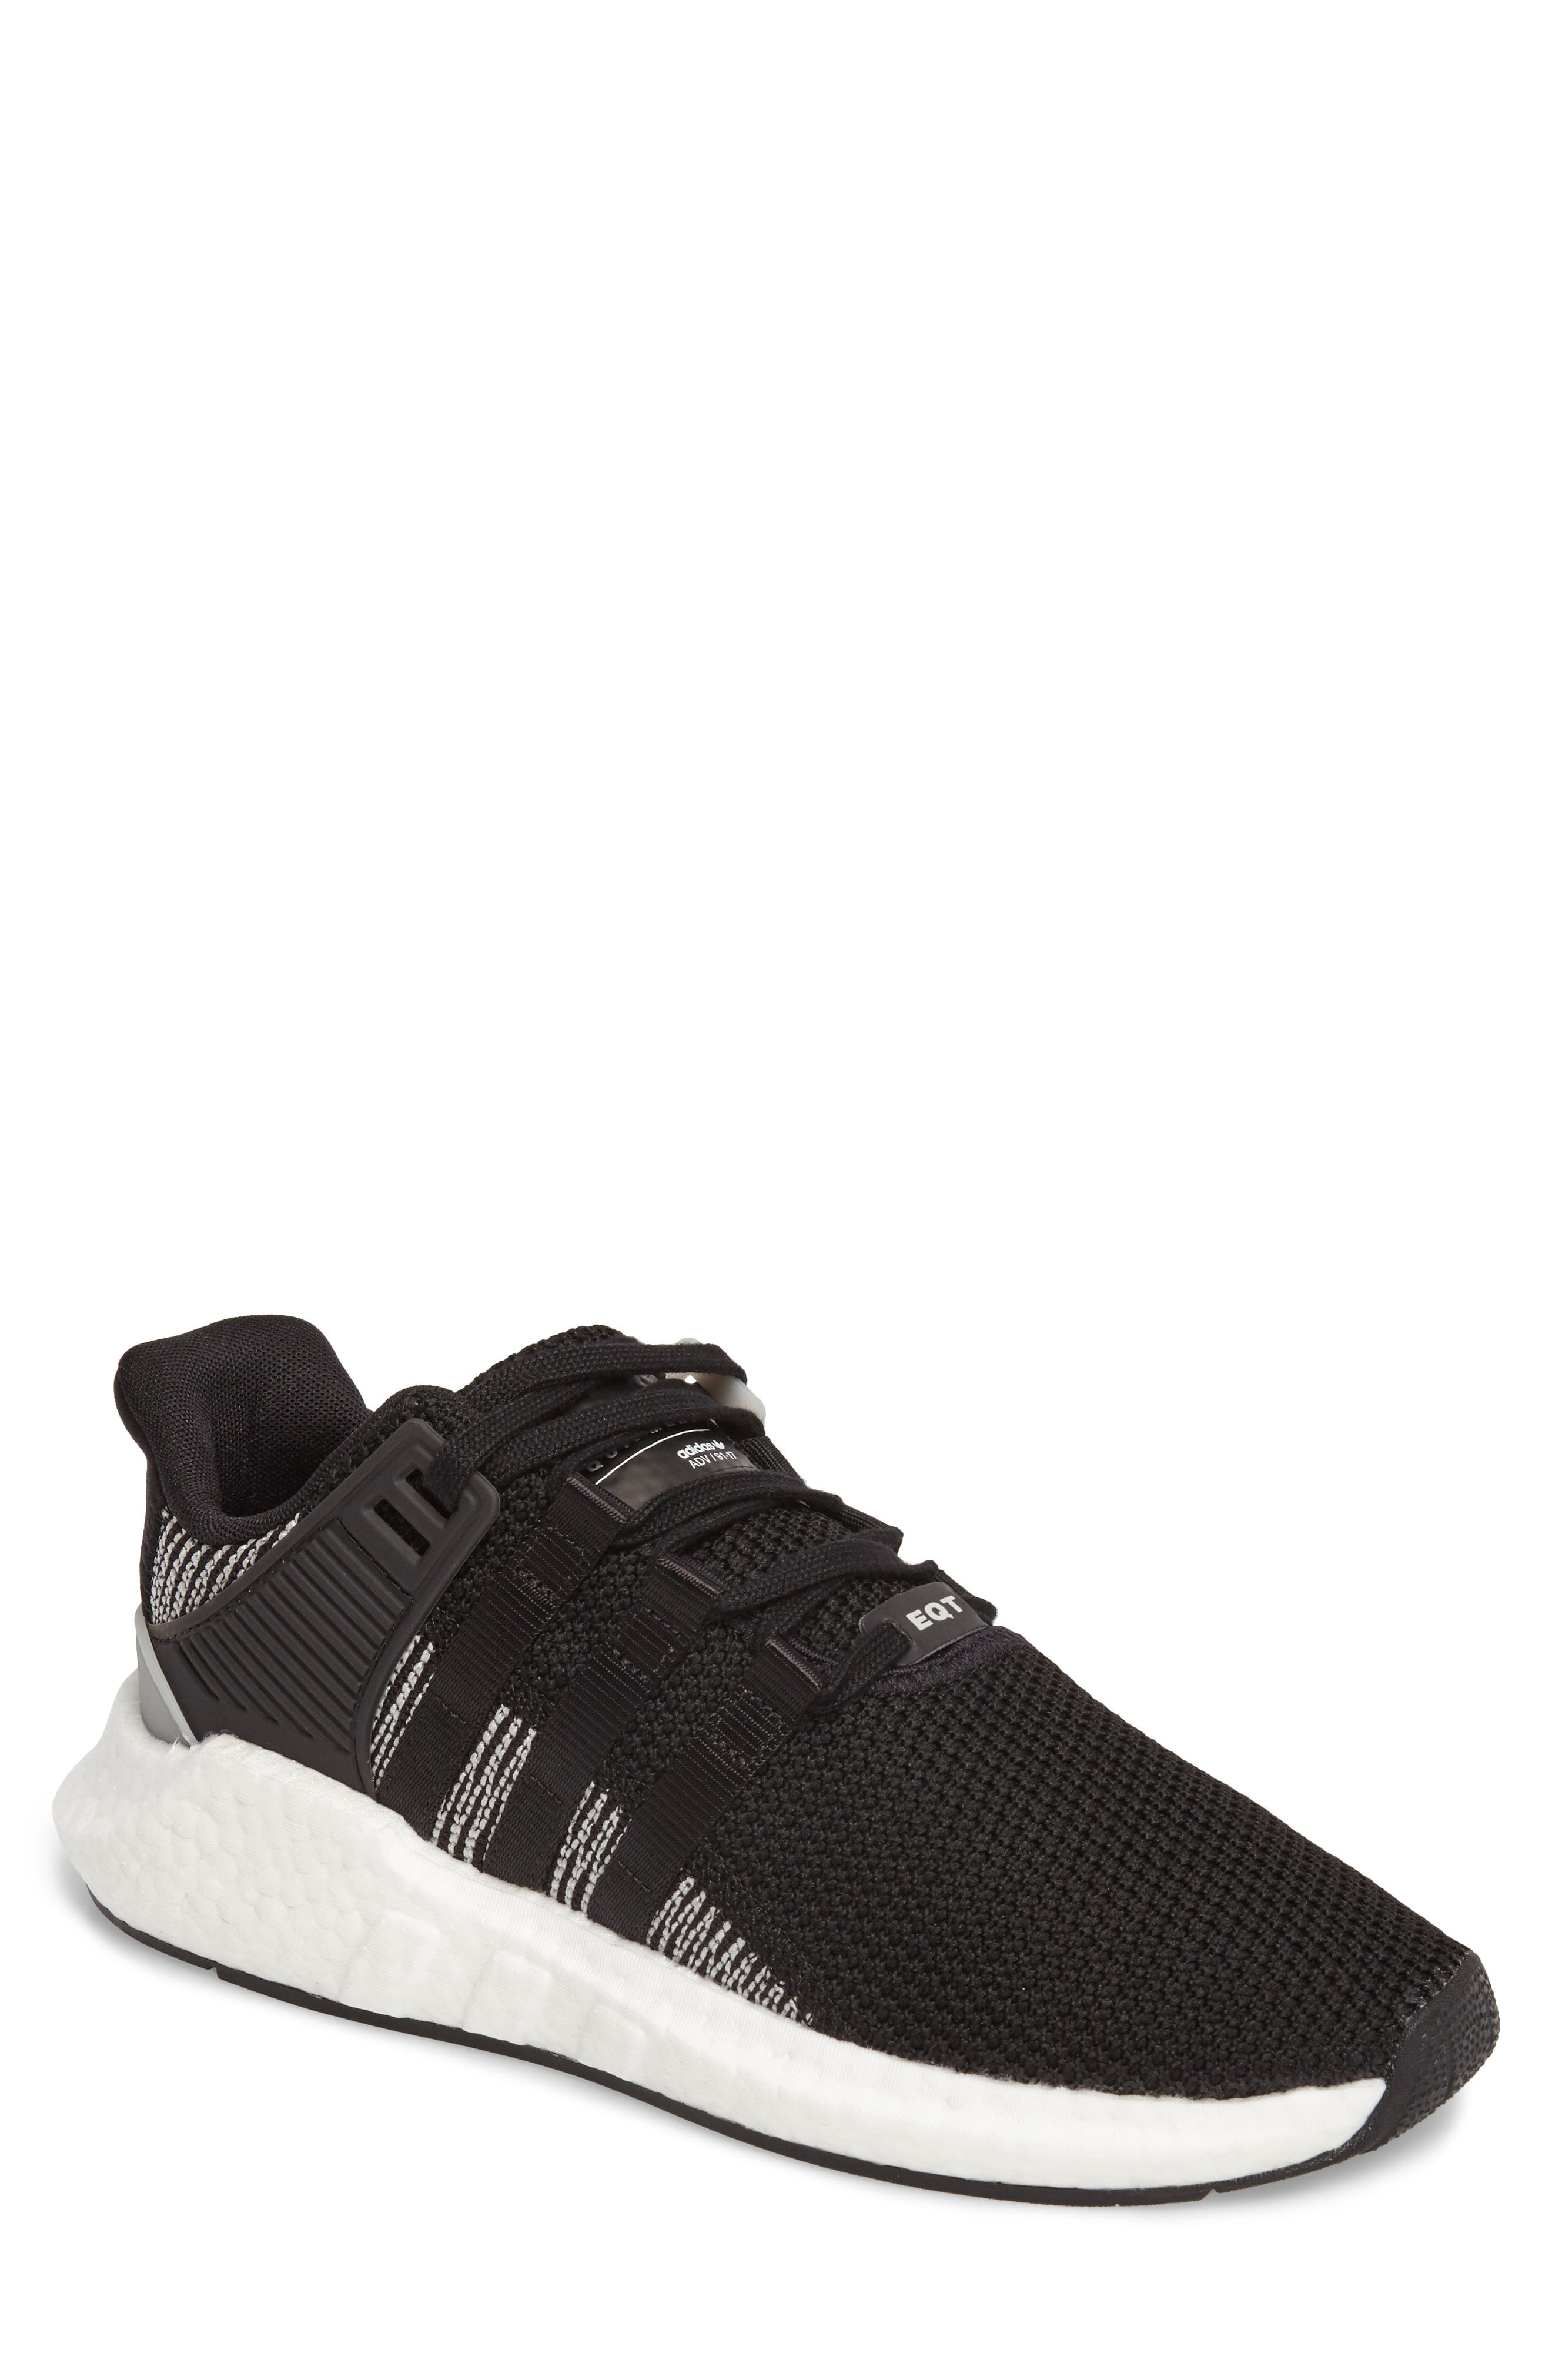 ADIDAS,                             EQT Support 93/17 Sneaker,                             Main thumbnail 1, color,                             001